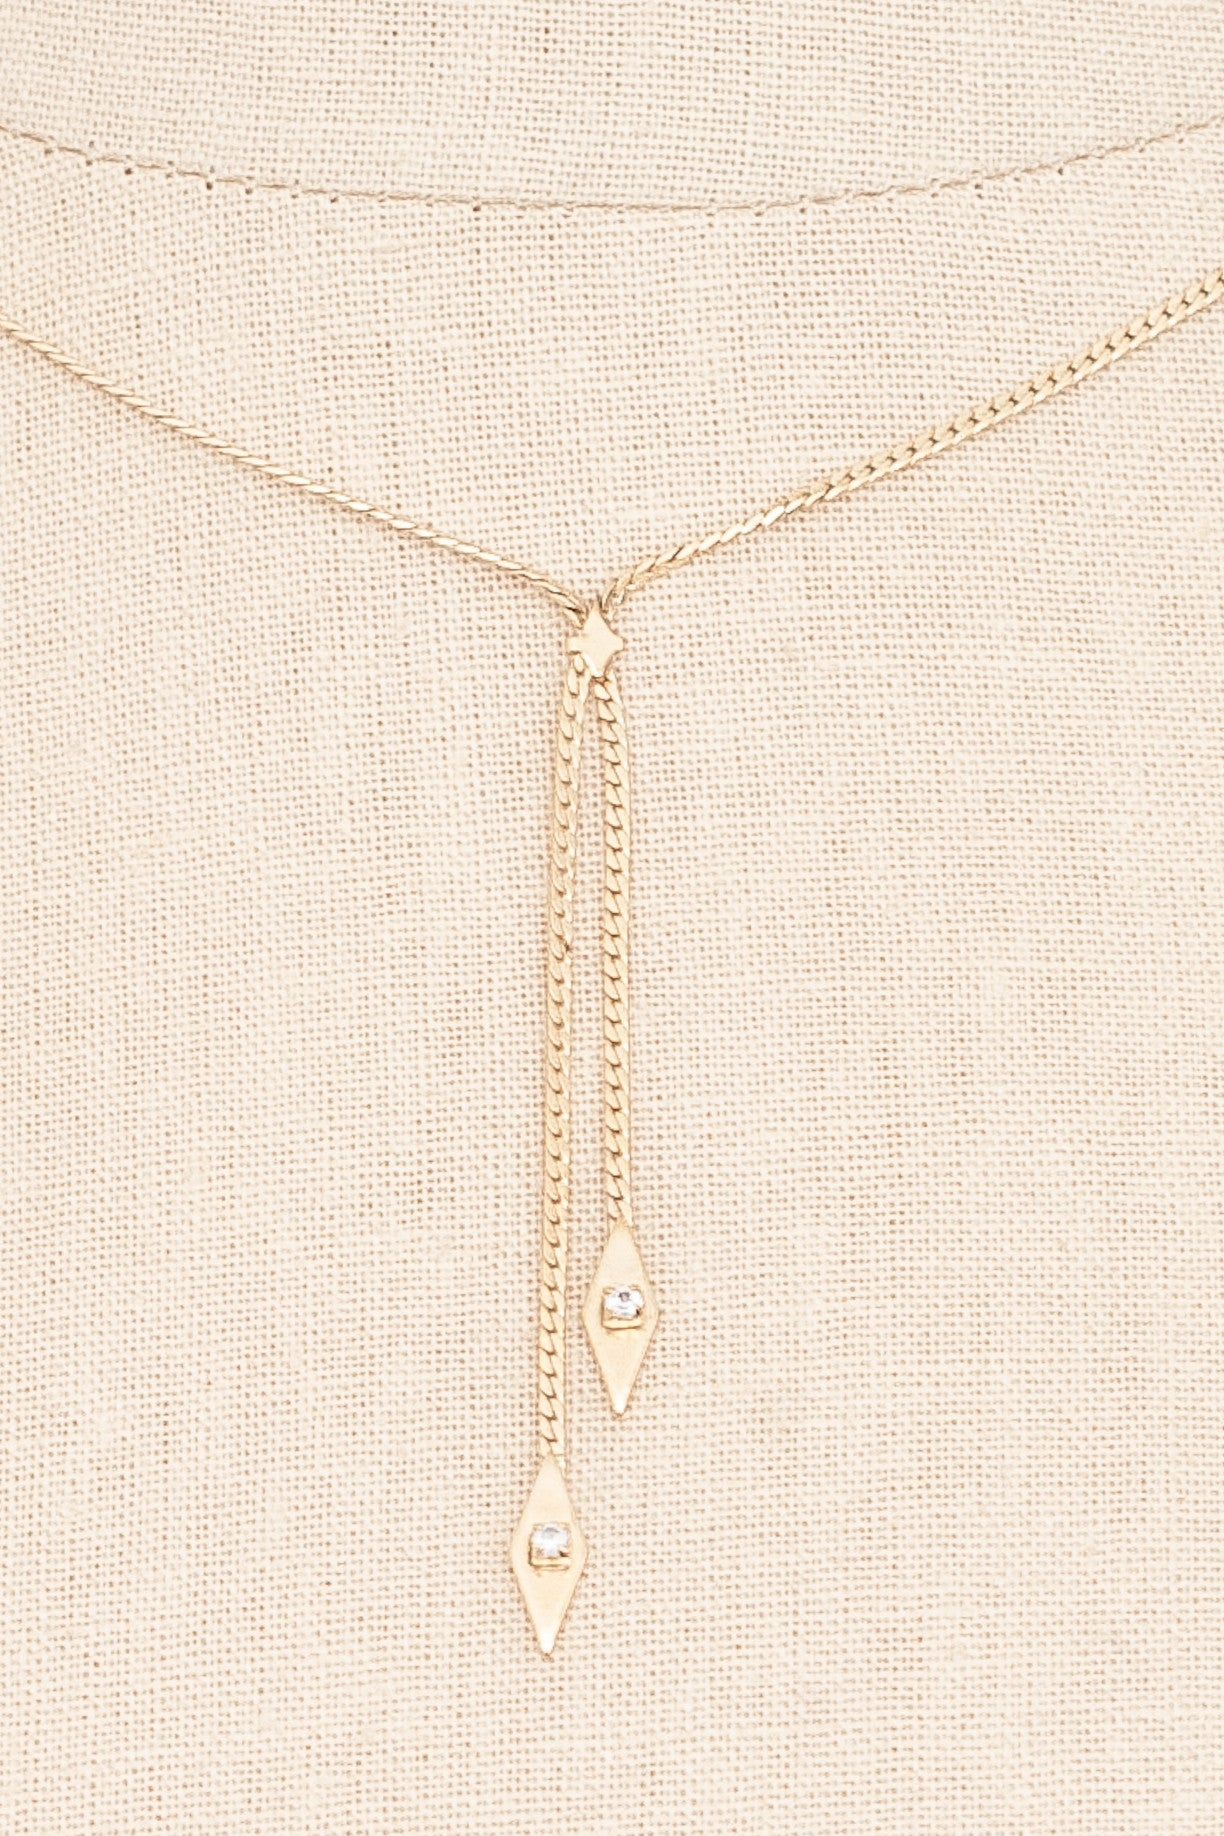 70's__Avon__Dainty Lariat Necklace